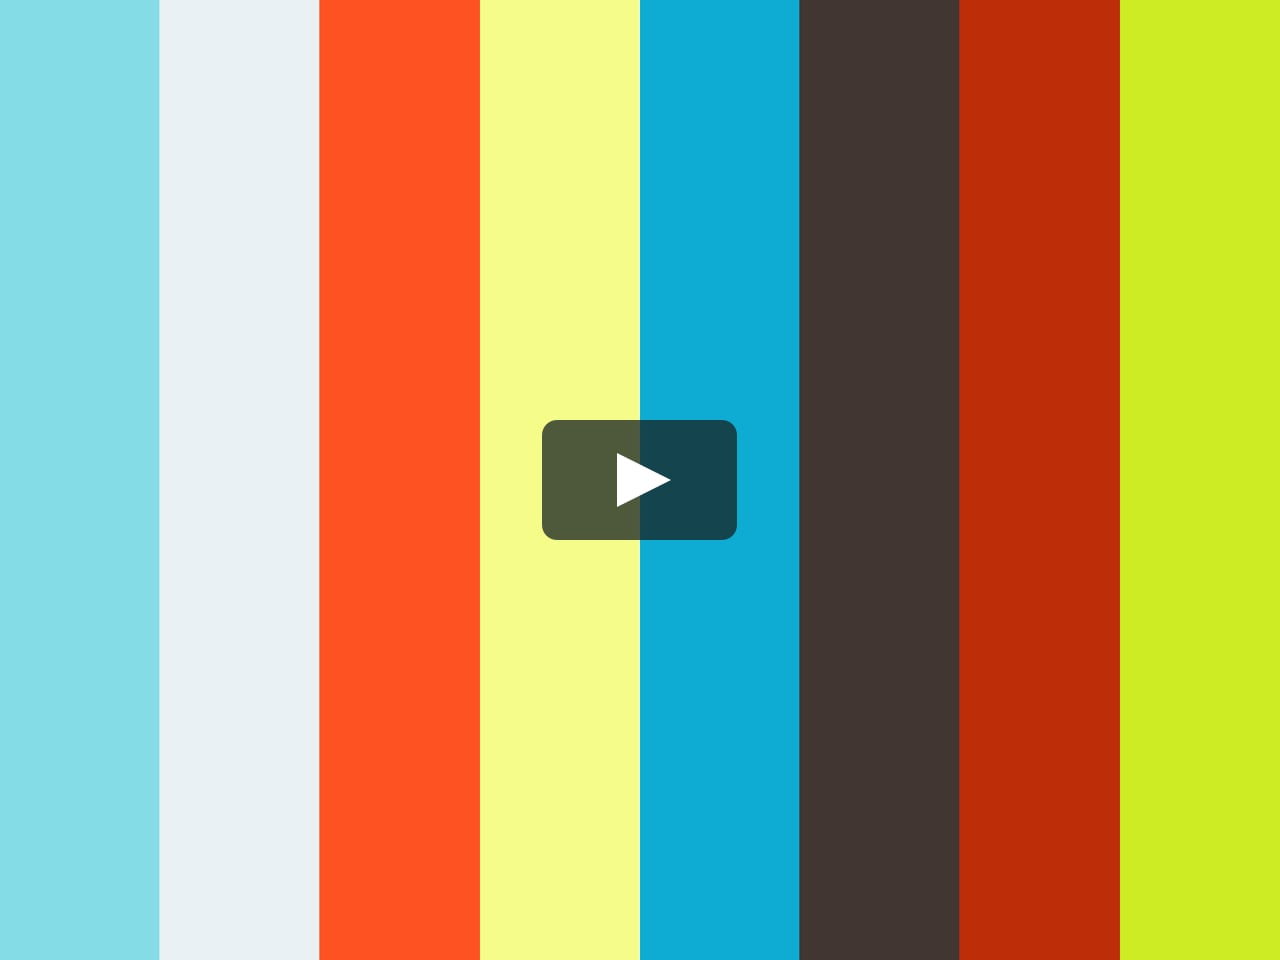 nature vs nurture essay outline on vimeo